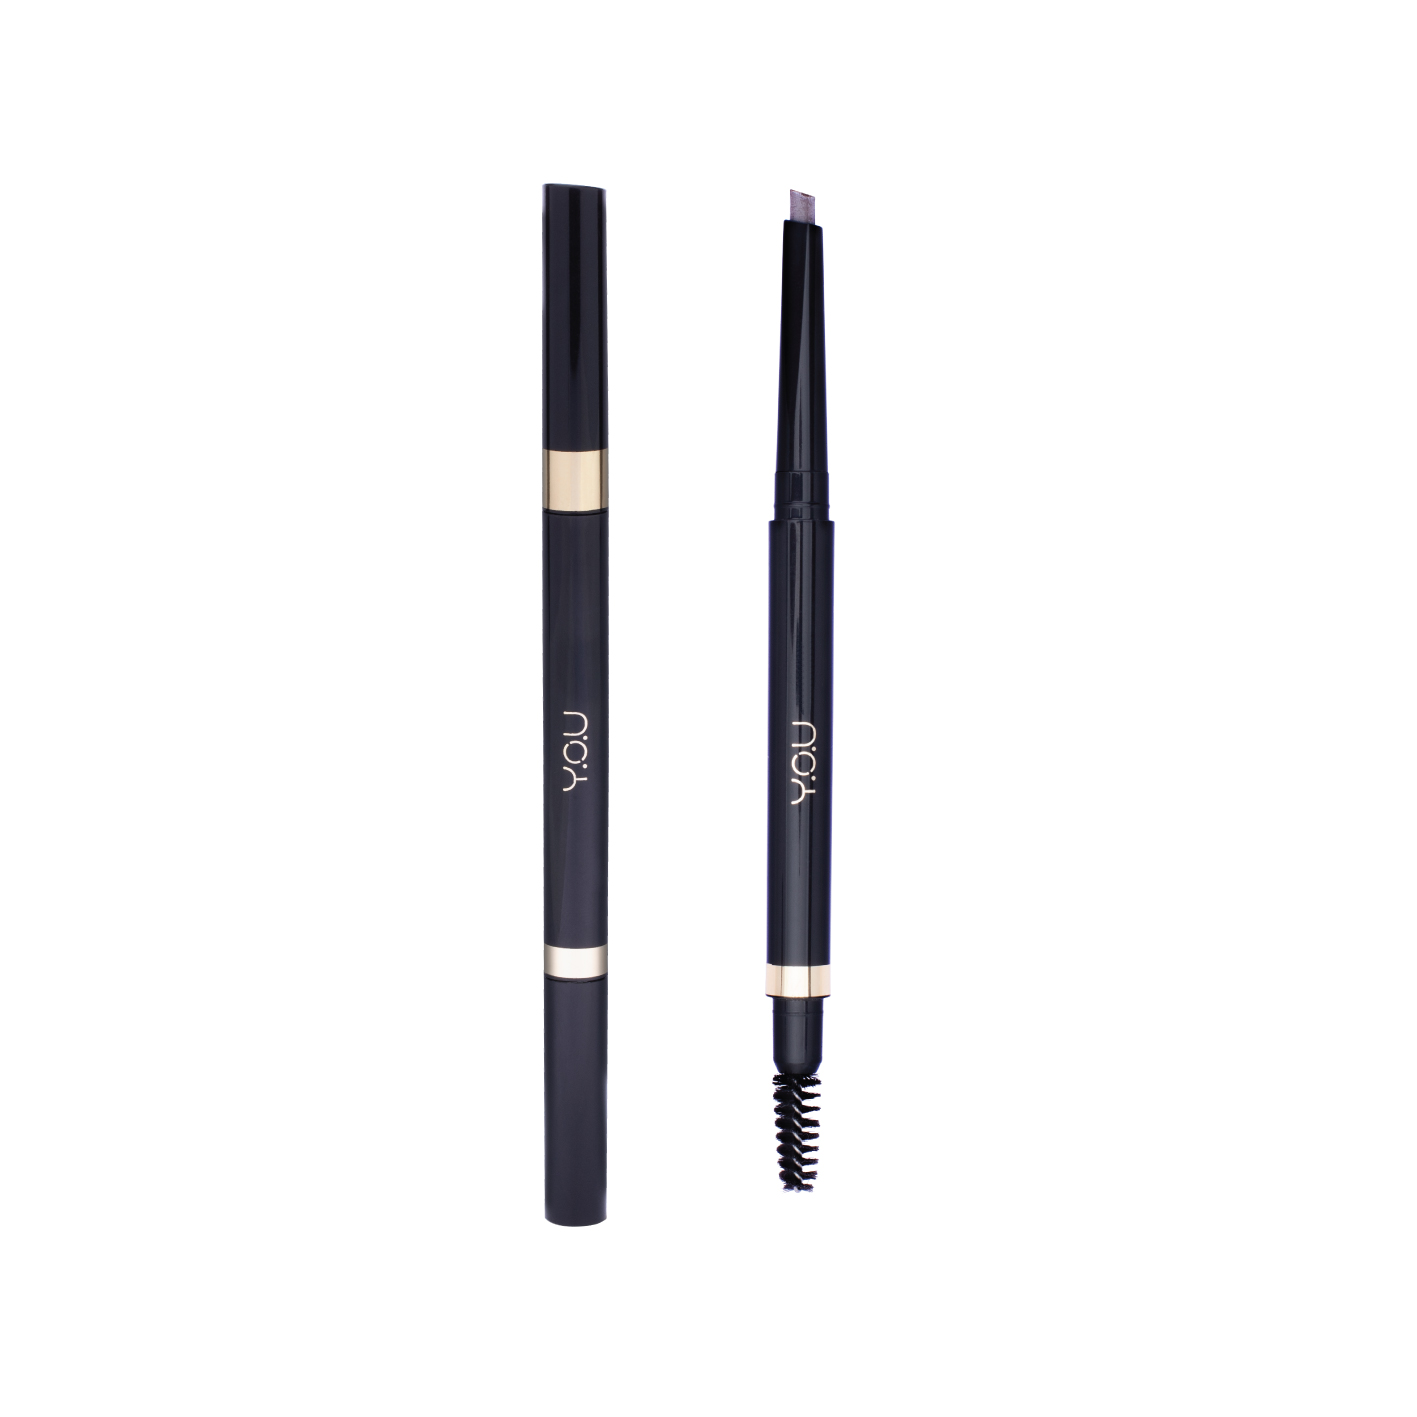 YOU DUAL EYEBROW STYLER PRO BROW DEFINER